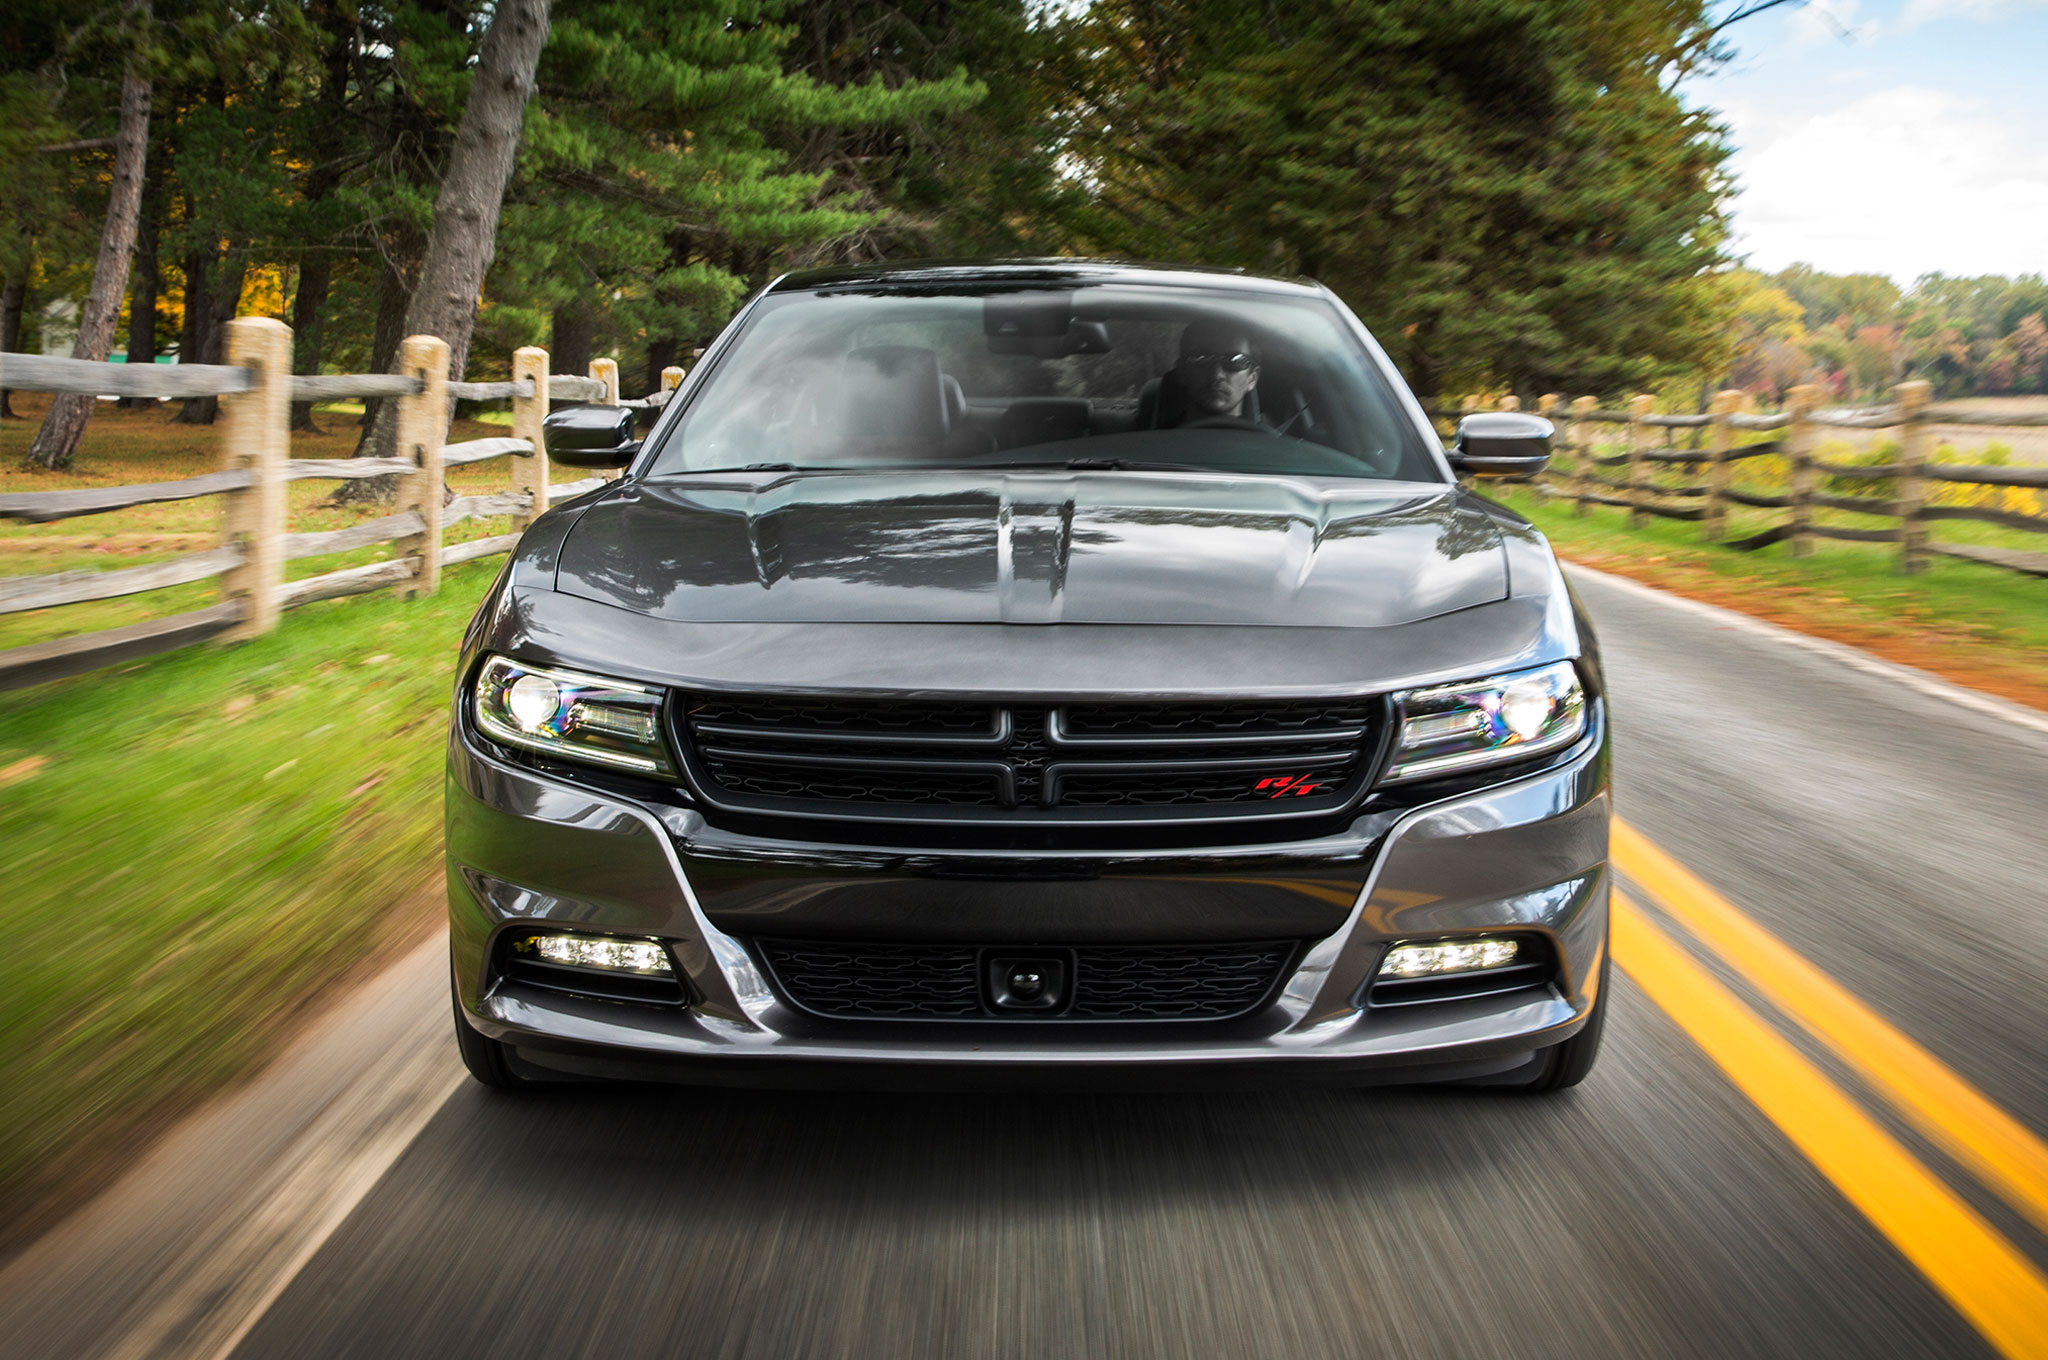 2015 Dodge Charger R T SRT 392 SXT AWD First Drive